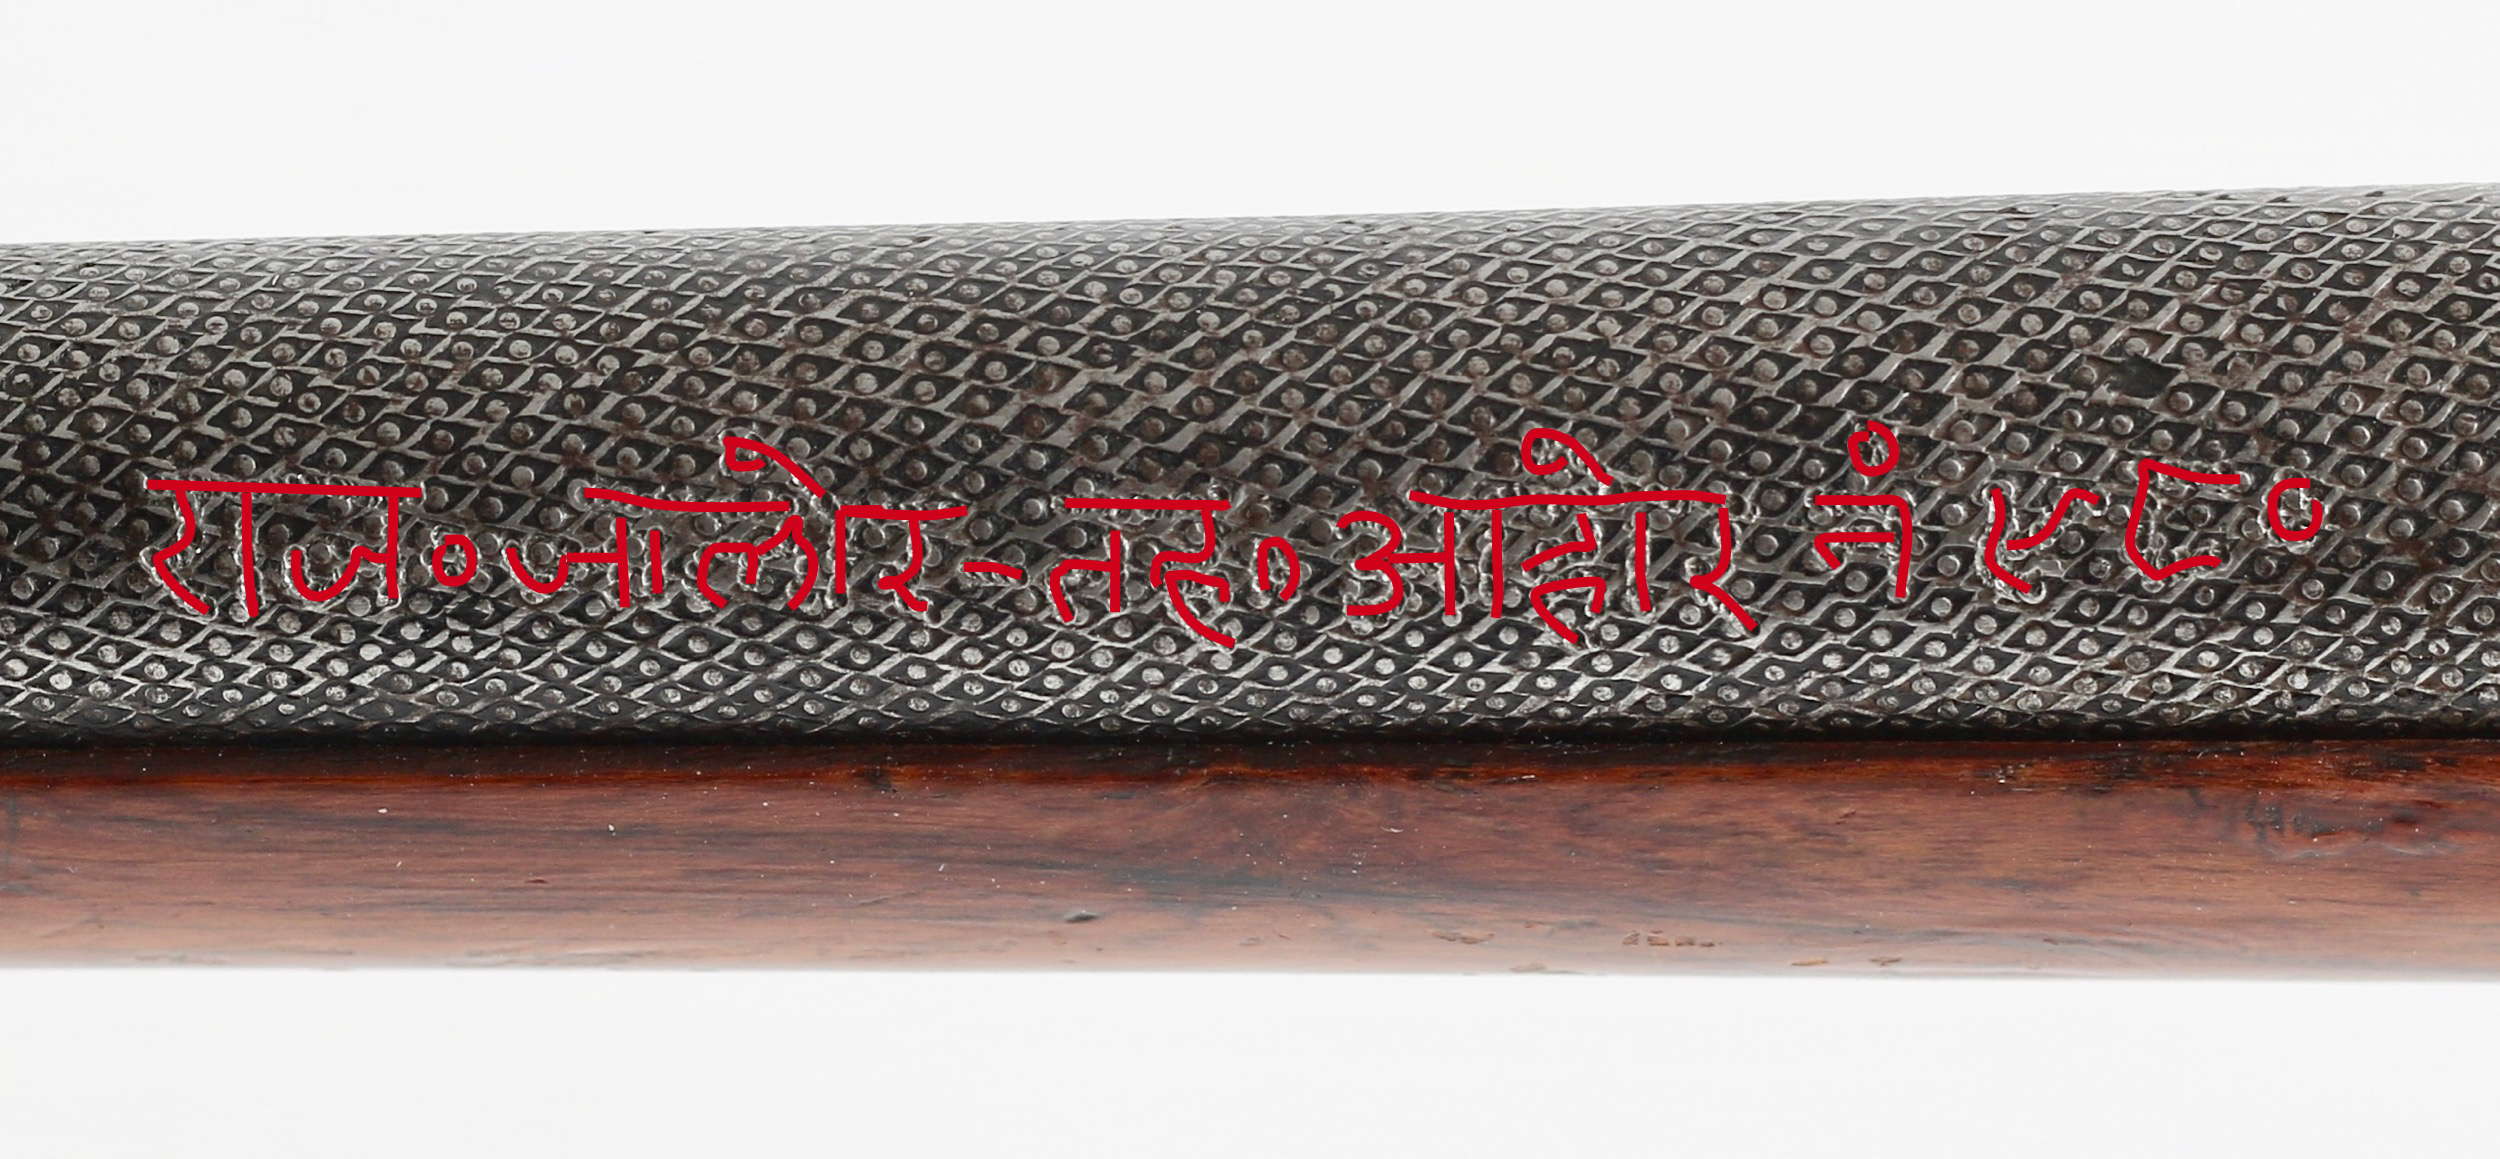 Inscription on a very fine Indian matchlock musket, or toradar, with stippled barrel, from Jalore.